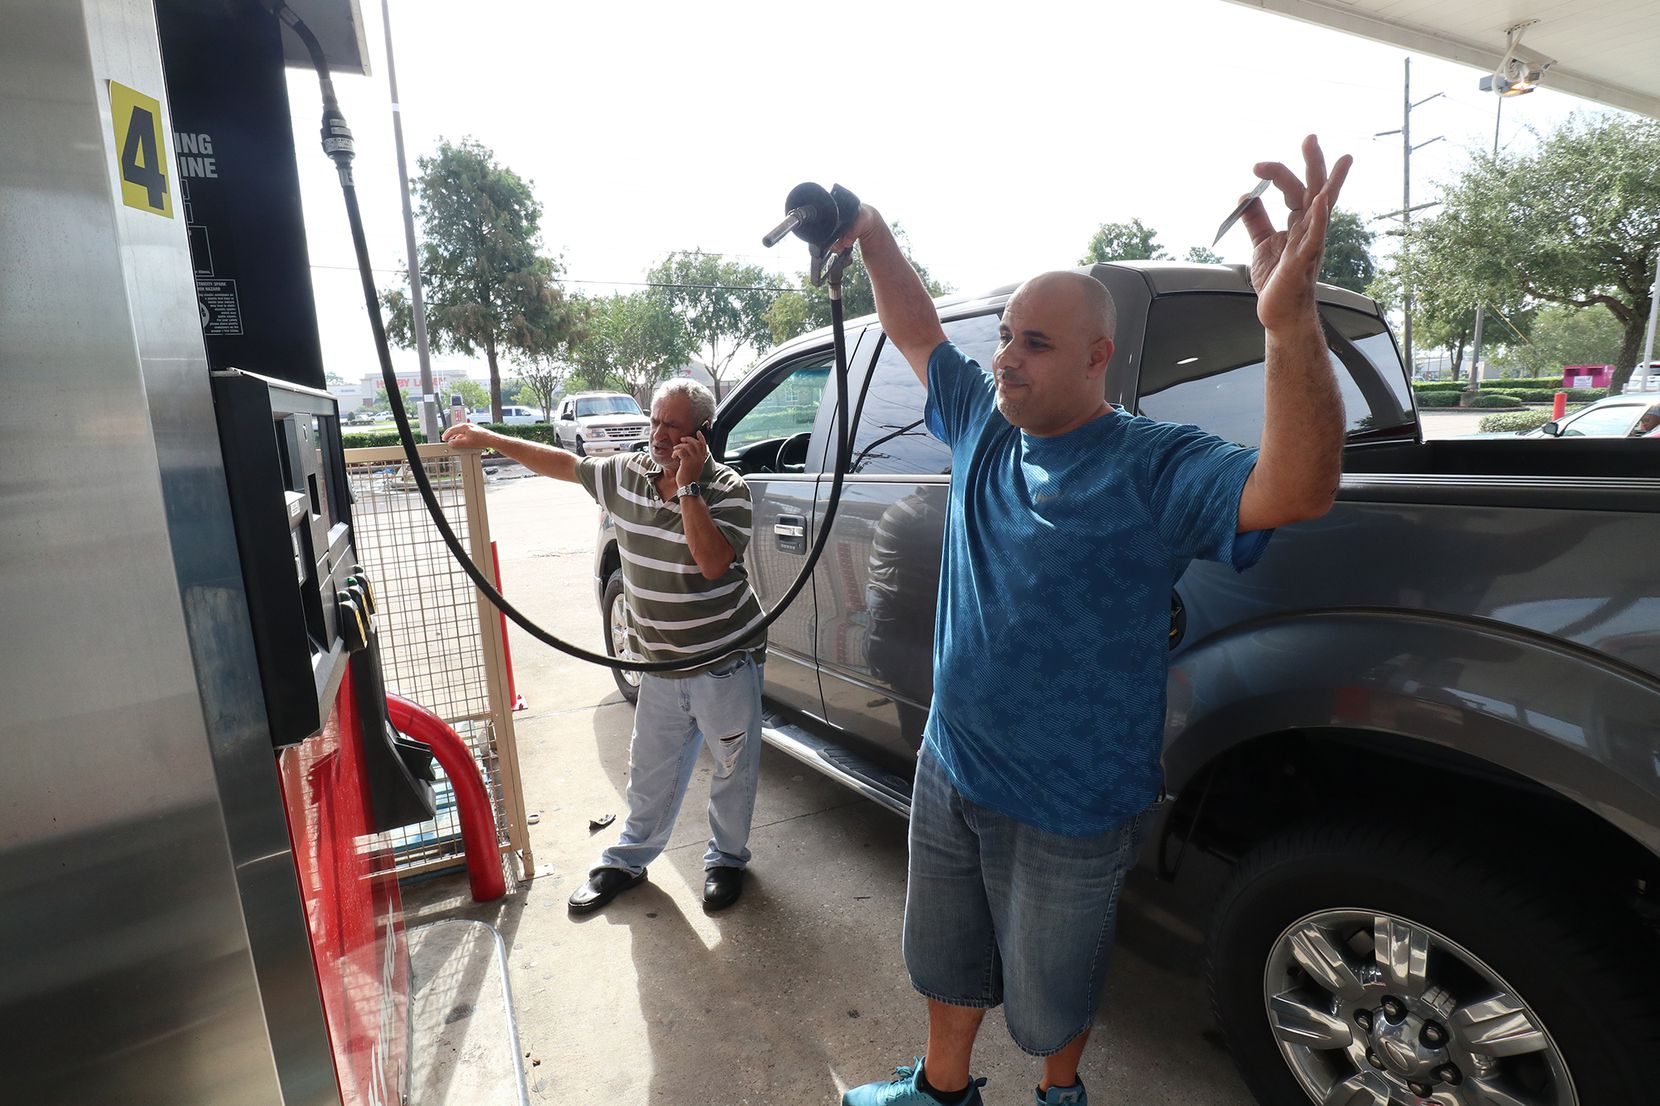 Rami Khdeir reacts to the gas pumps running out of fuel at Kroger in Beaumont, Texas,  August 31, 2017. His father-in-law Asad Bassa tries to find another place for fuel.